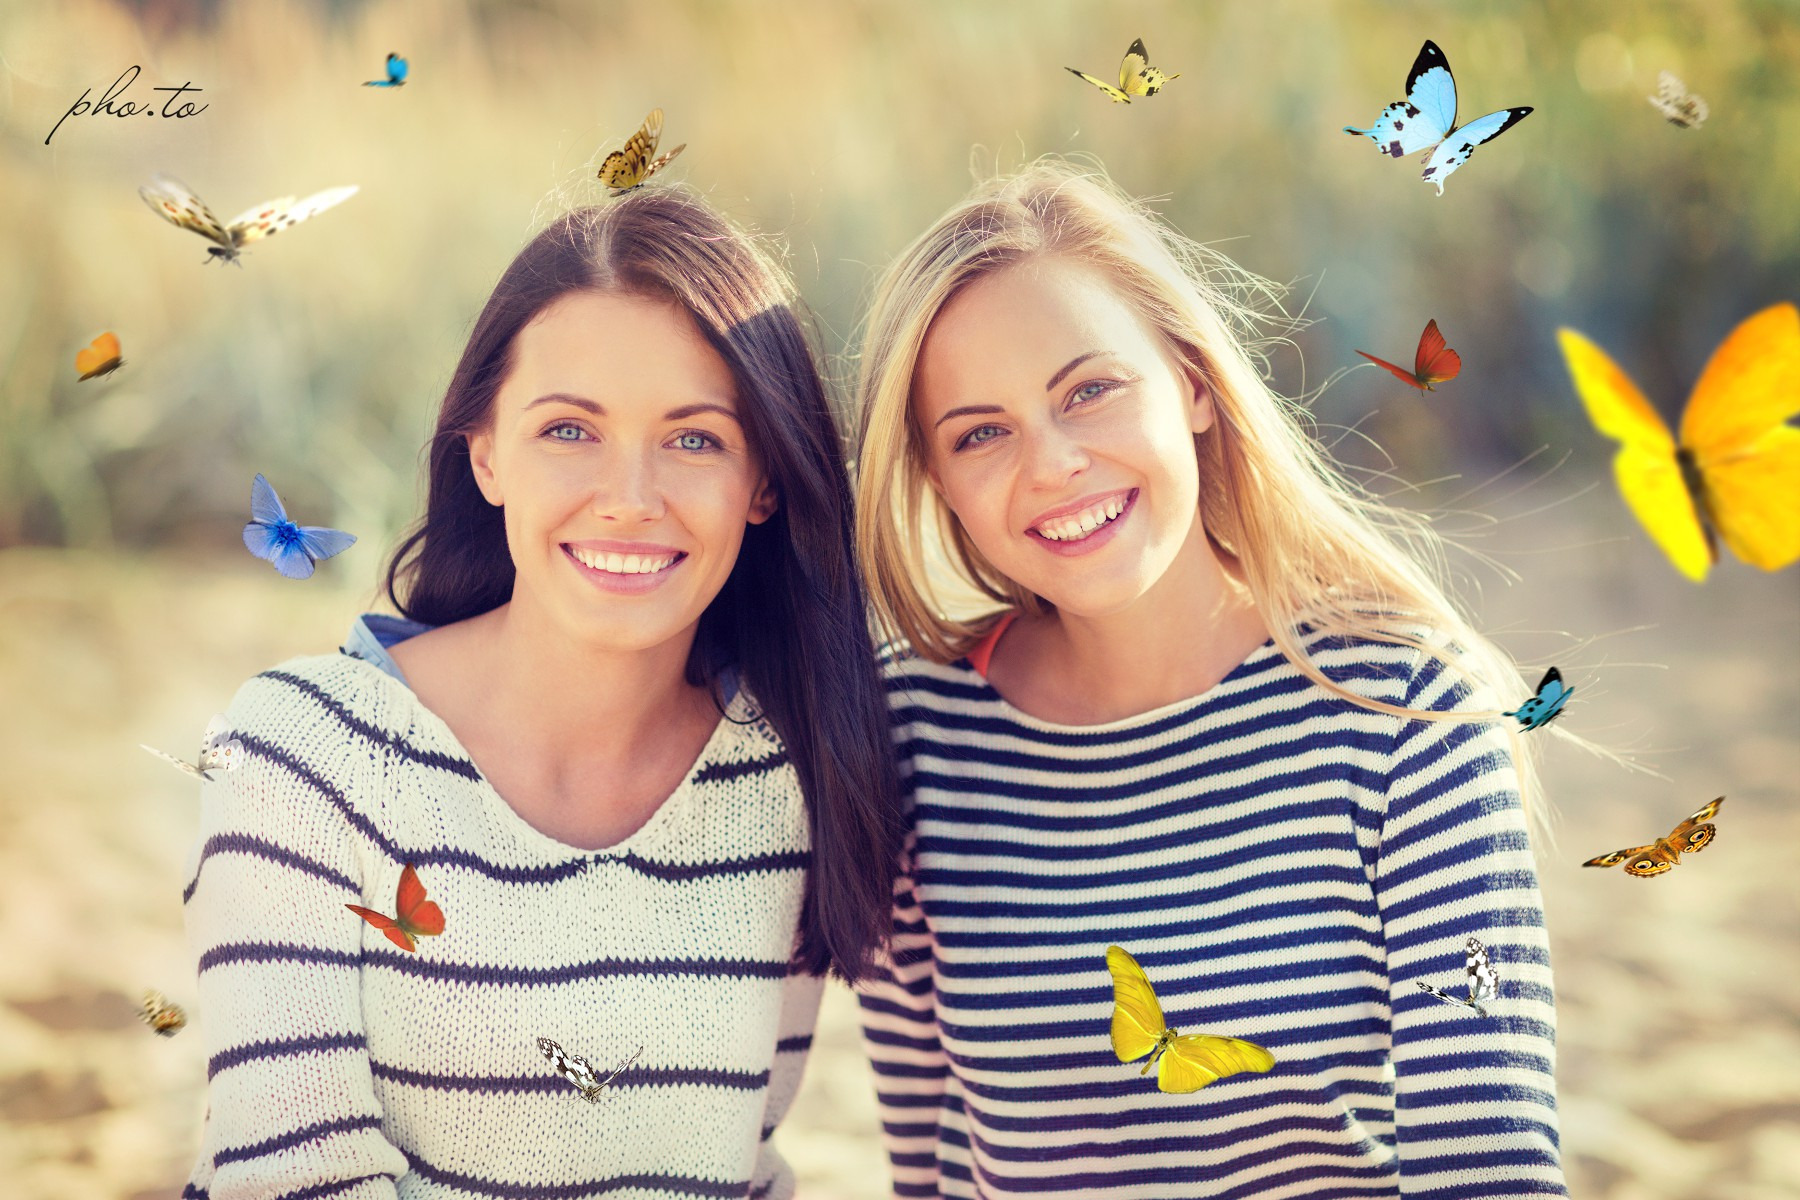 A photo of two smiling girls with butterfly overlay applied online.